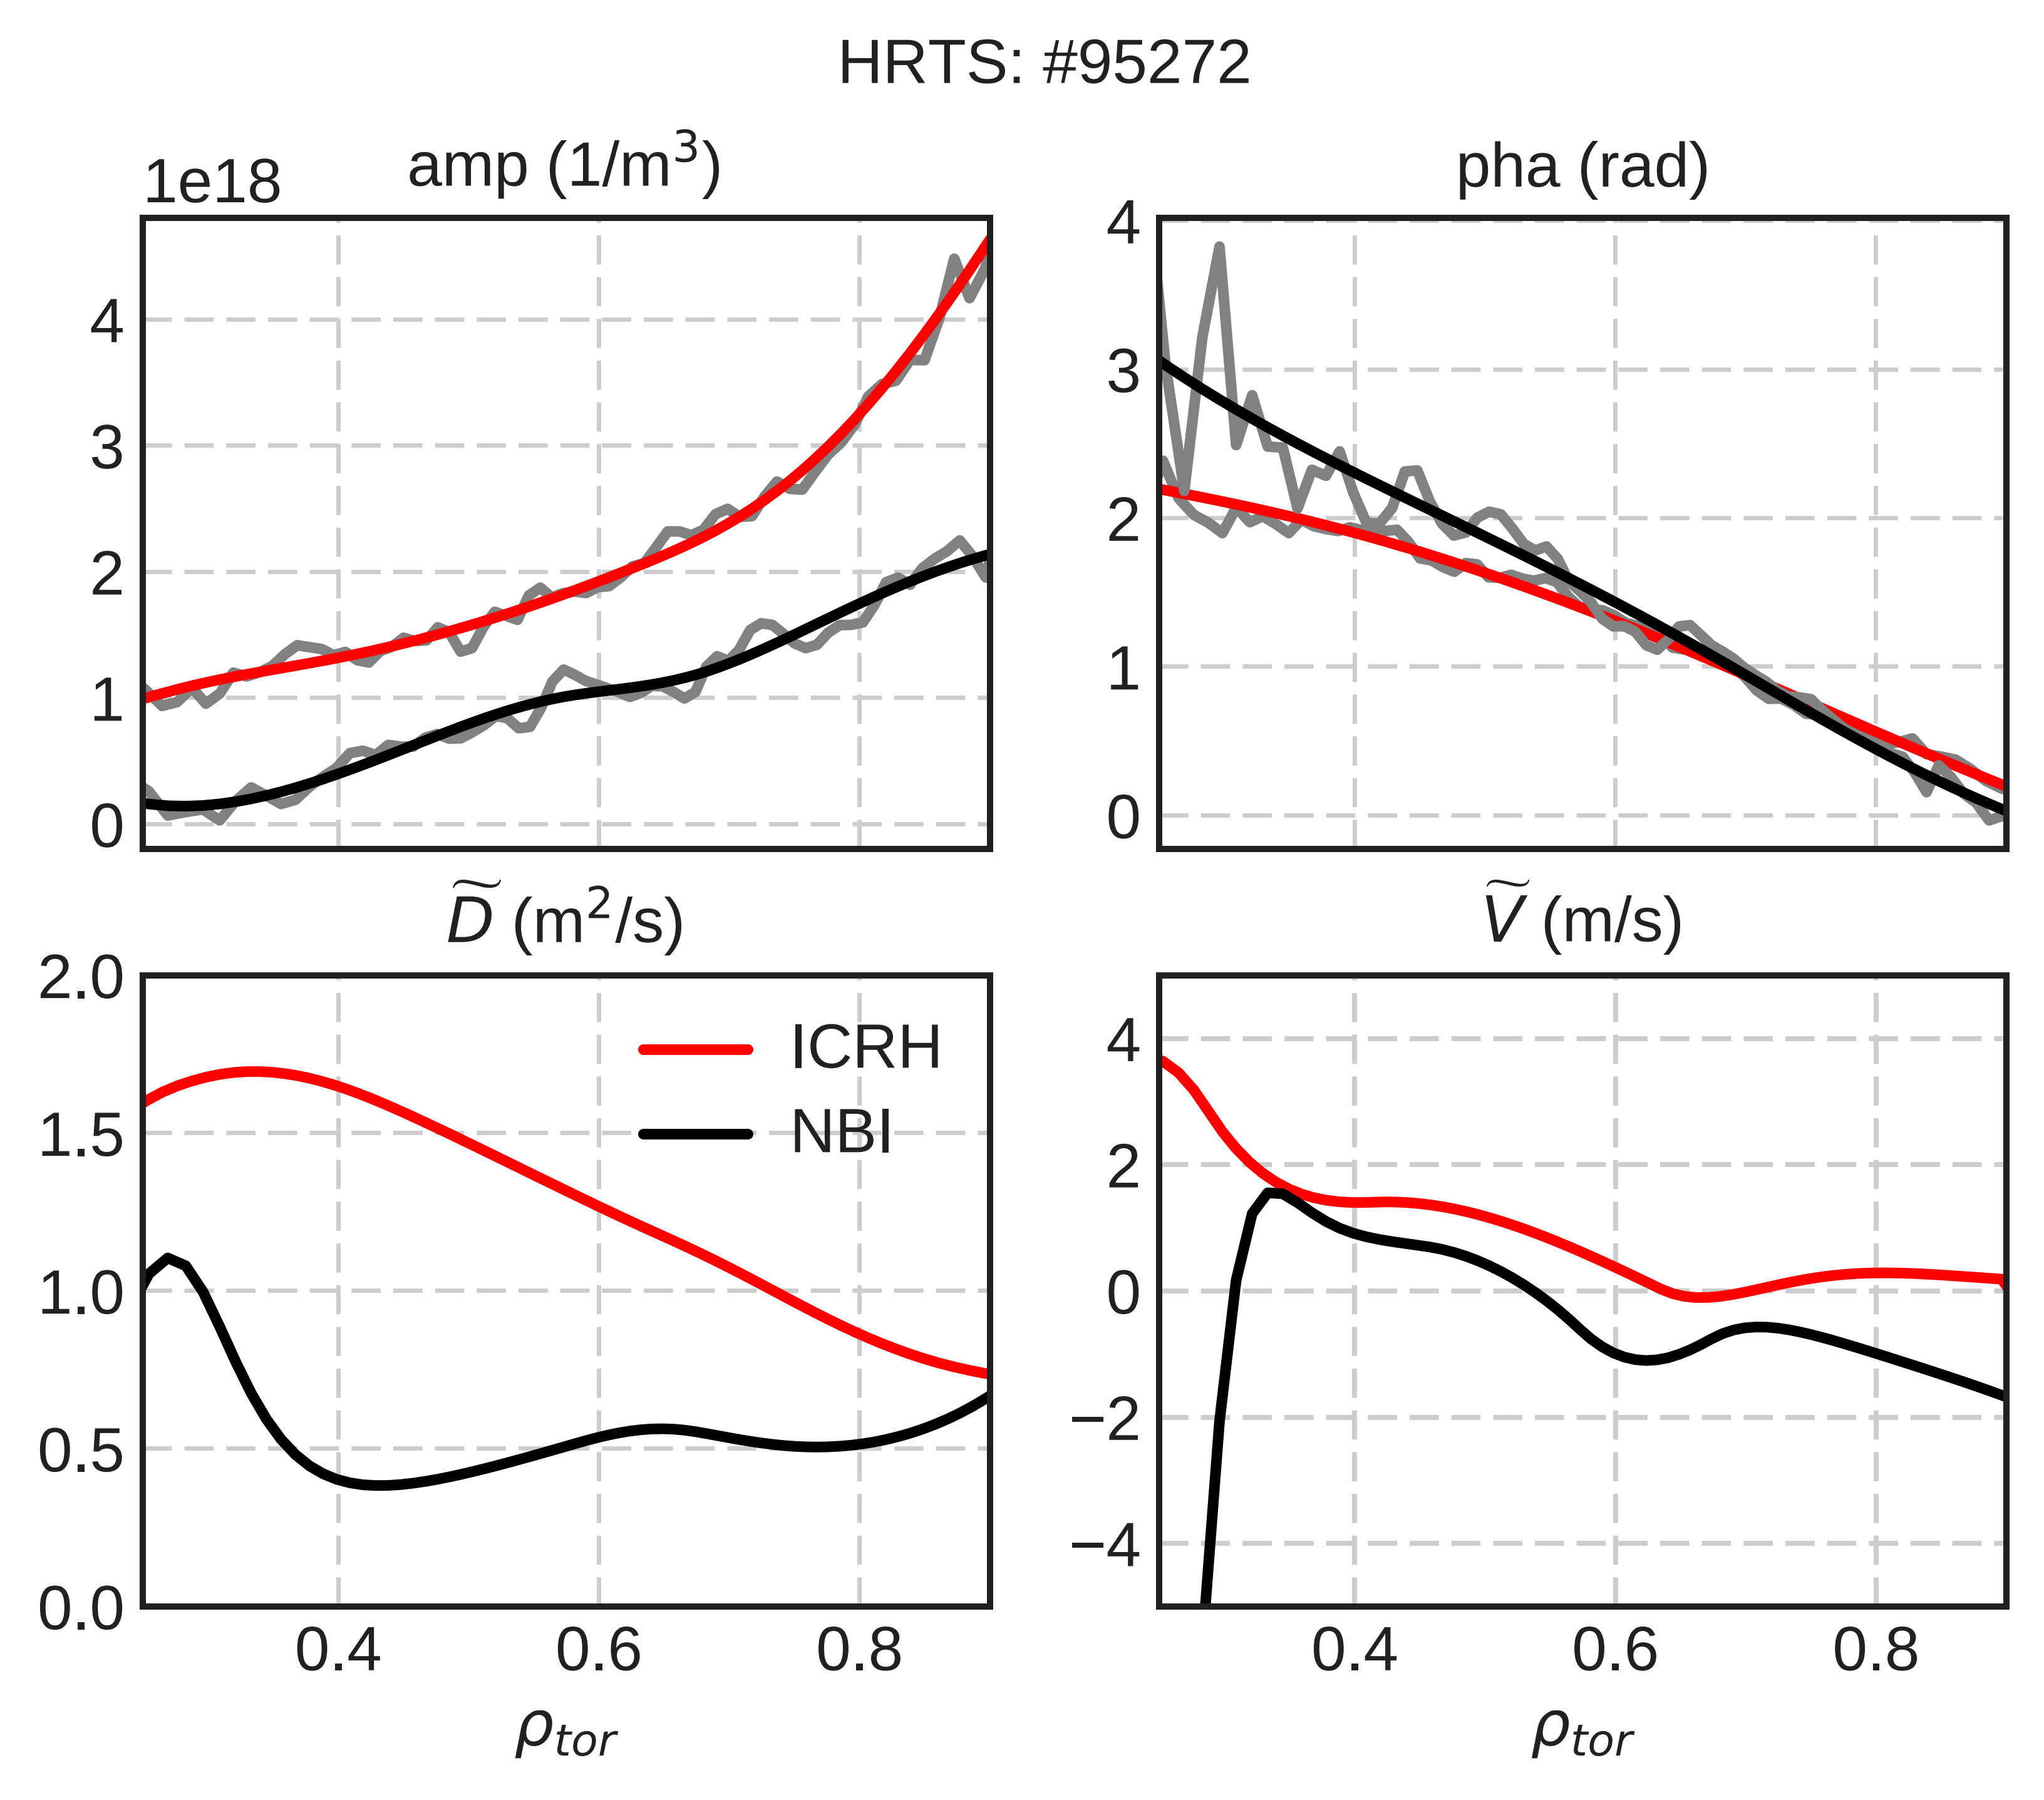 Figure 3. The amplitude and phase profiles (upper row) and the corresponding perturbative particle diffusion D ̃  and pinch V ̃ profiles (lower row) for the ICRH (red) and NBI (black) discharges.